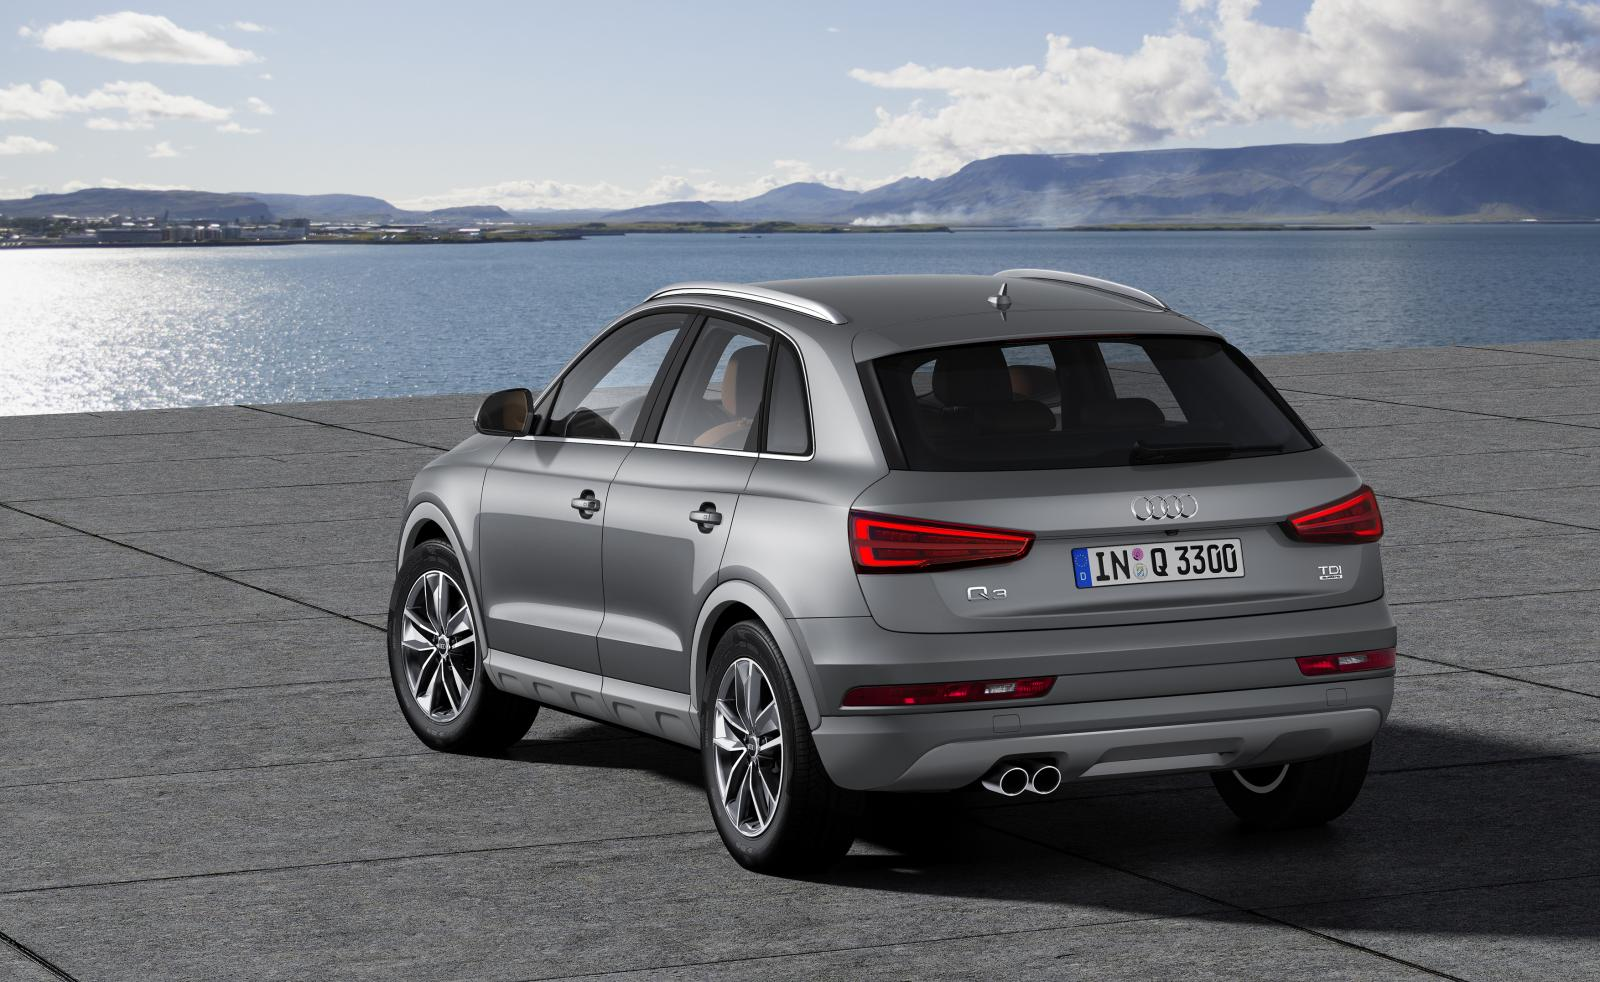 2015 audi q3 face lift design review motoroids. Black Bedroom Furniture Sets. Home Design Ideas